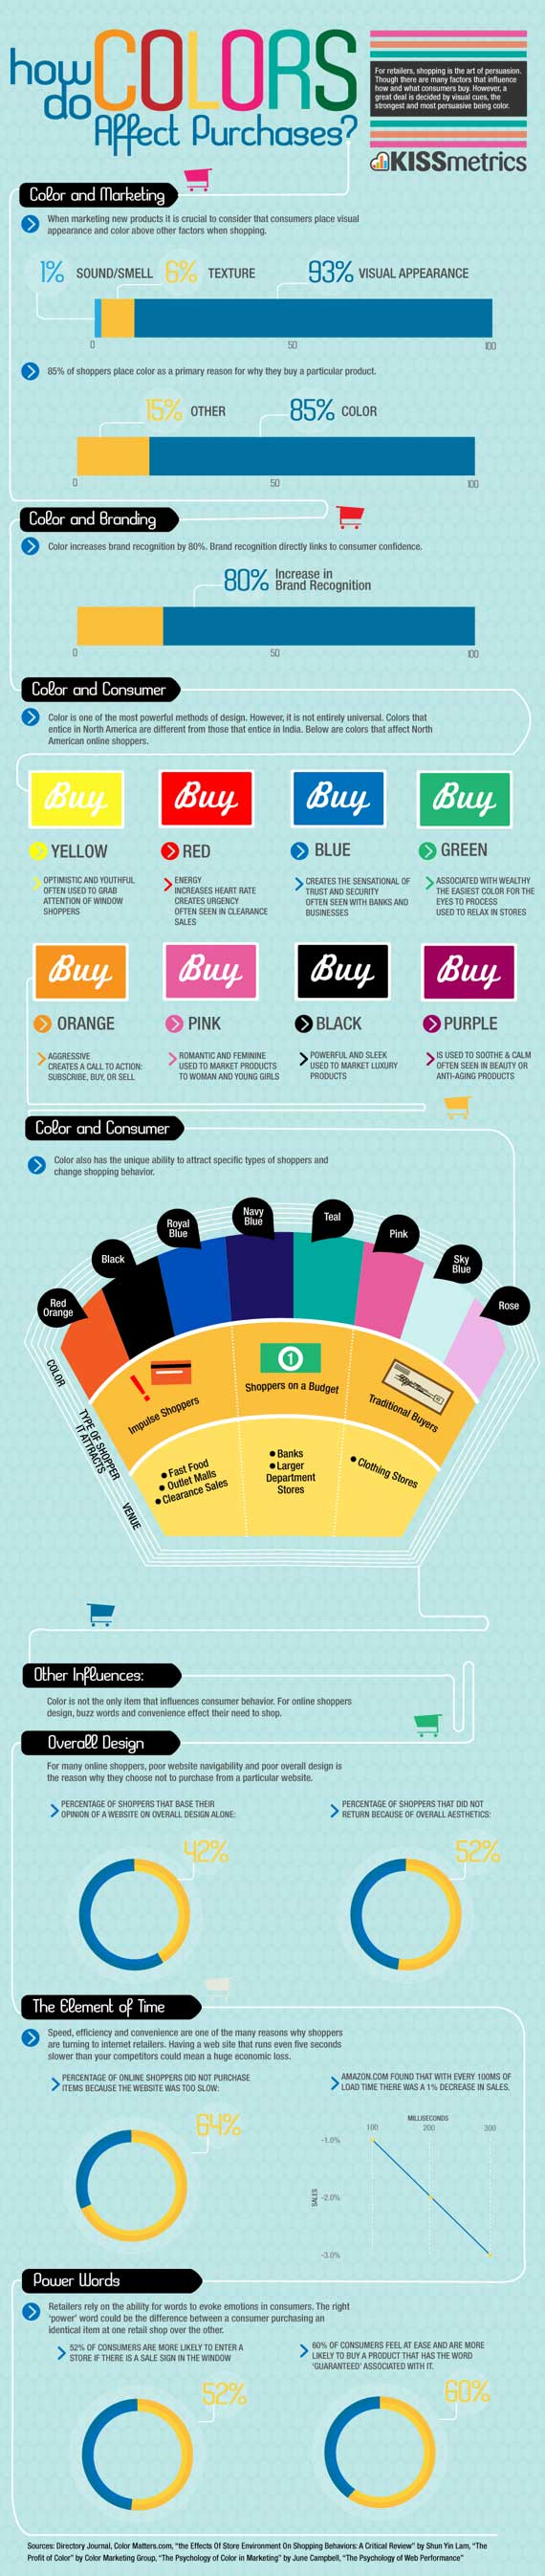 Do Different Colors Affect Purchasing? - You Bet They Do! - infographic from KissMetrics